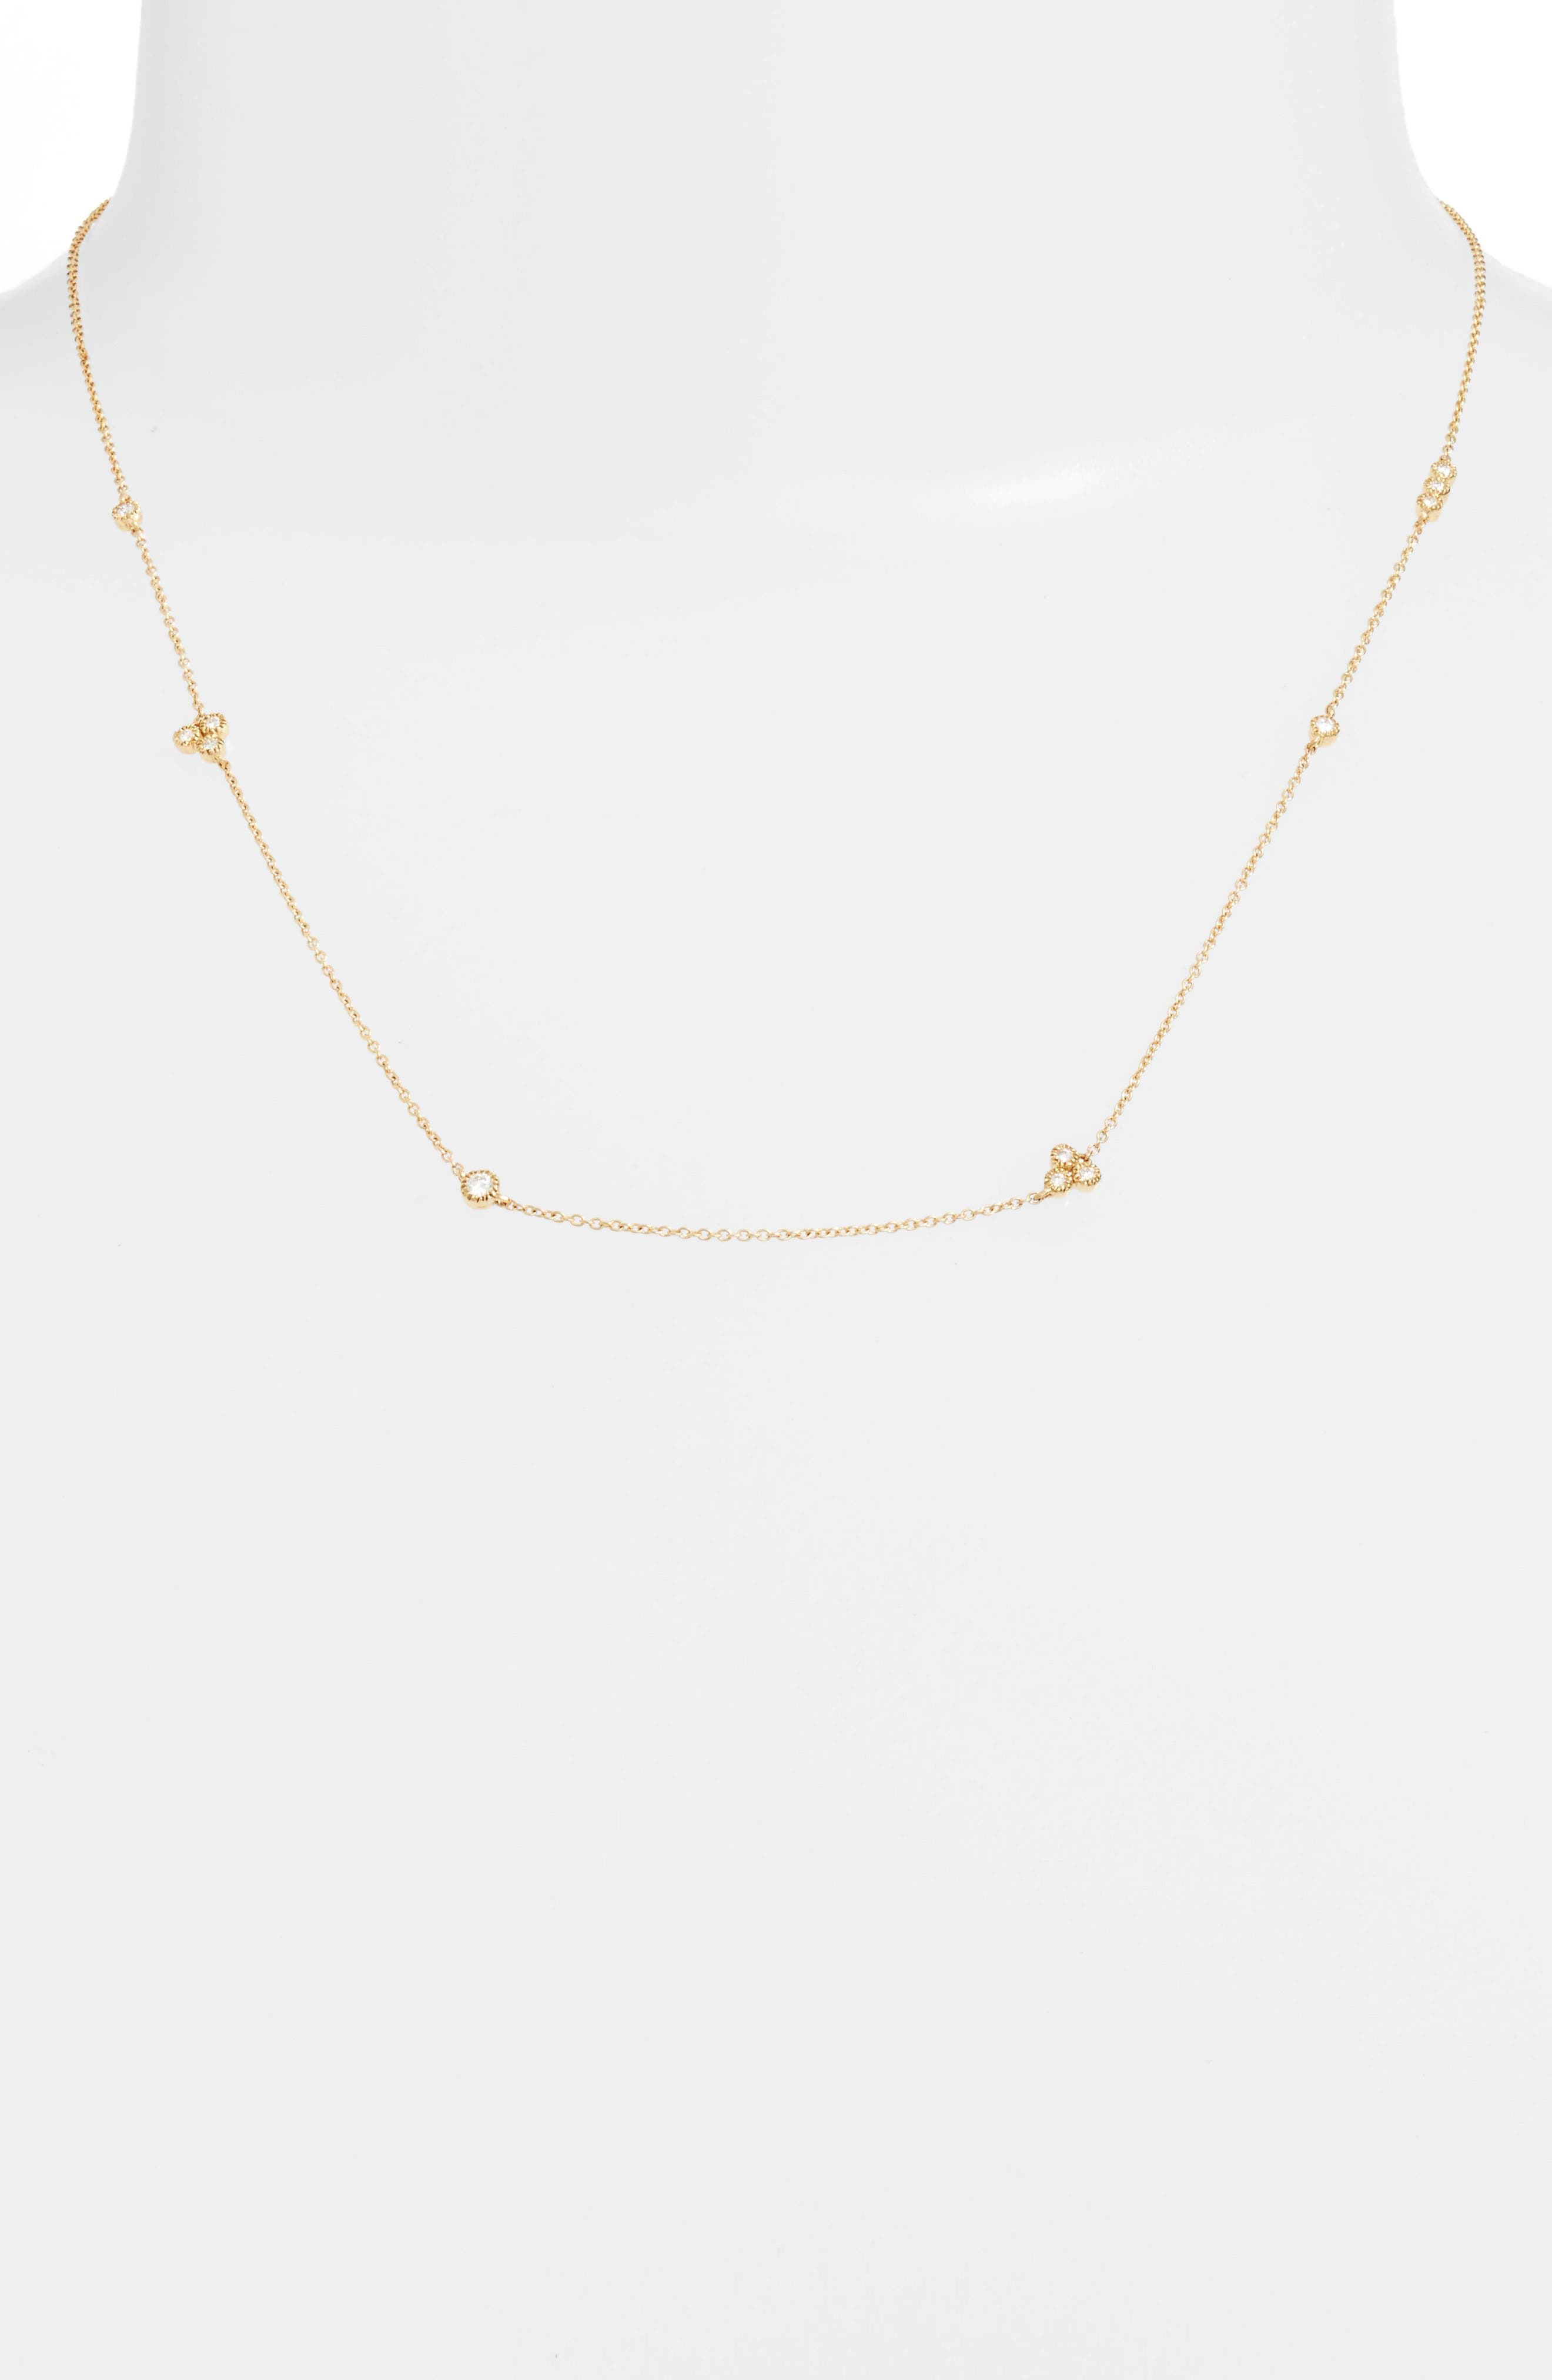 Harlowe Short Diamond Station Necklace,                         Main,                         color, Yellow Gold